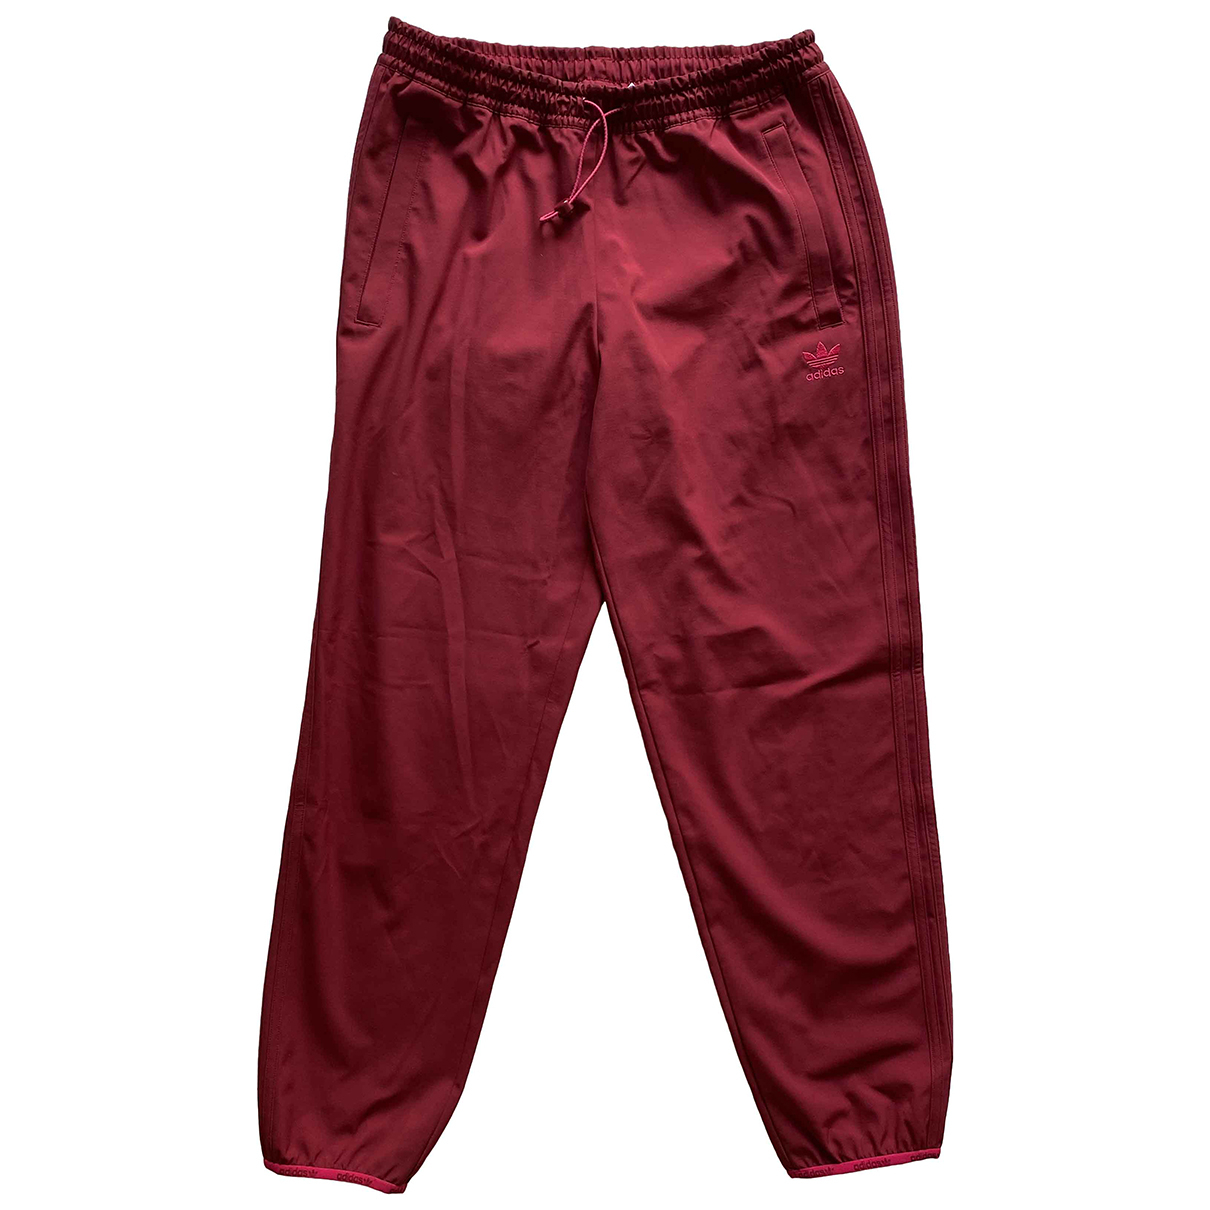 Adidas N Burgundy Trousers for Men M International